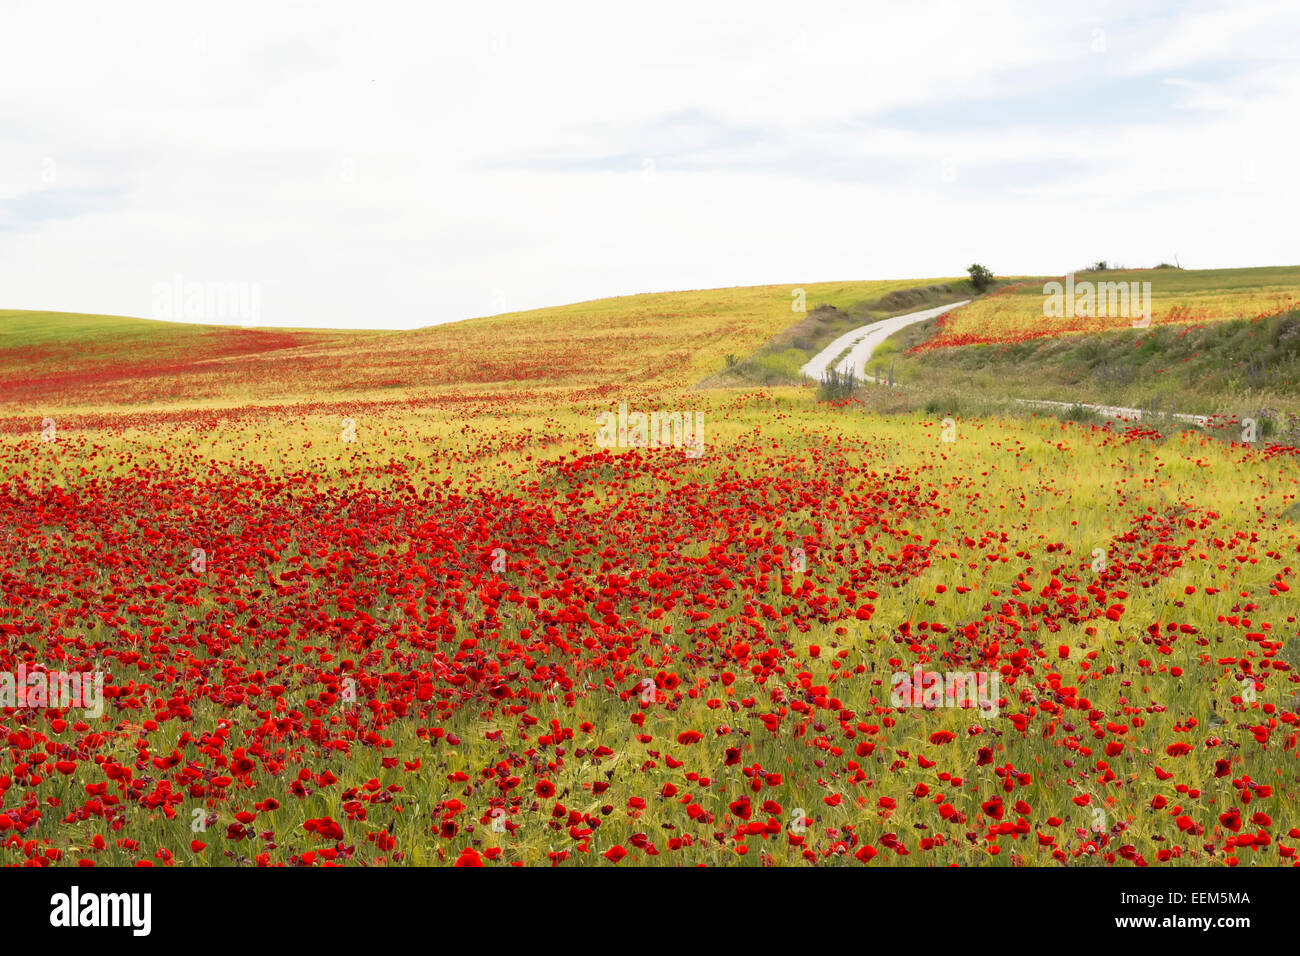 Field full of poppies flowers traversed by a winding ,unpaved ,country road - Stock Image